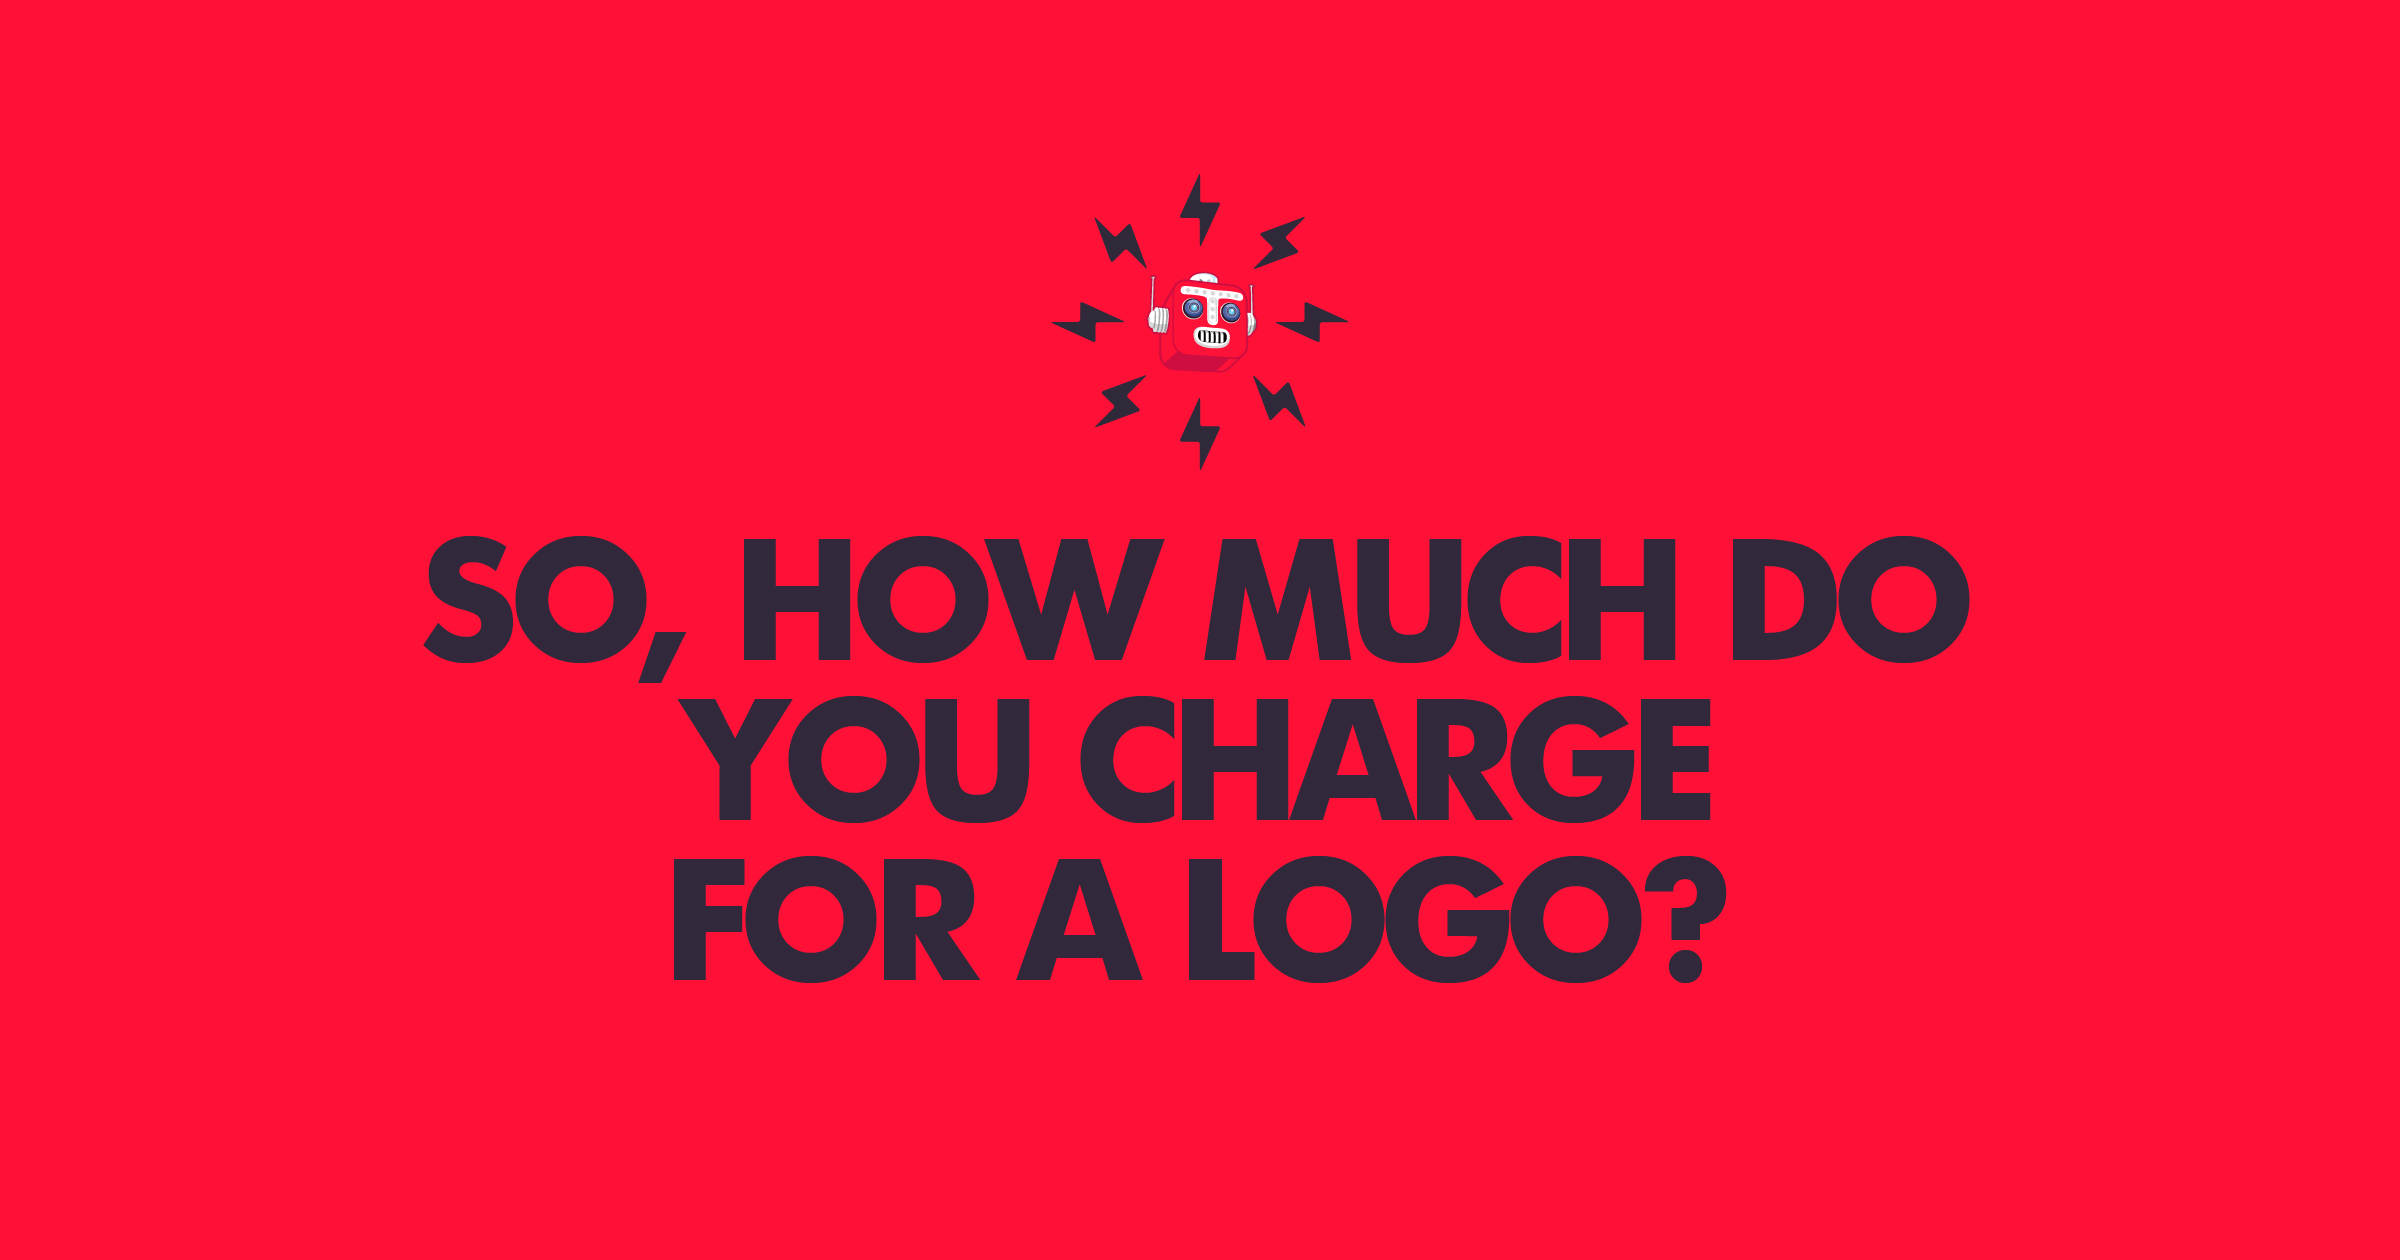 How much do you charge for a logo?